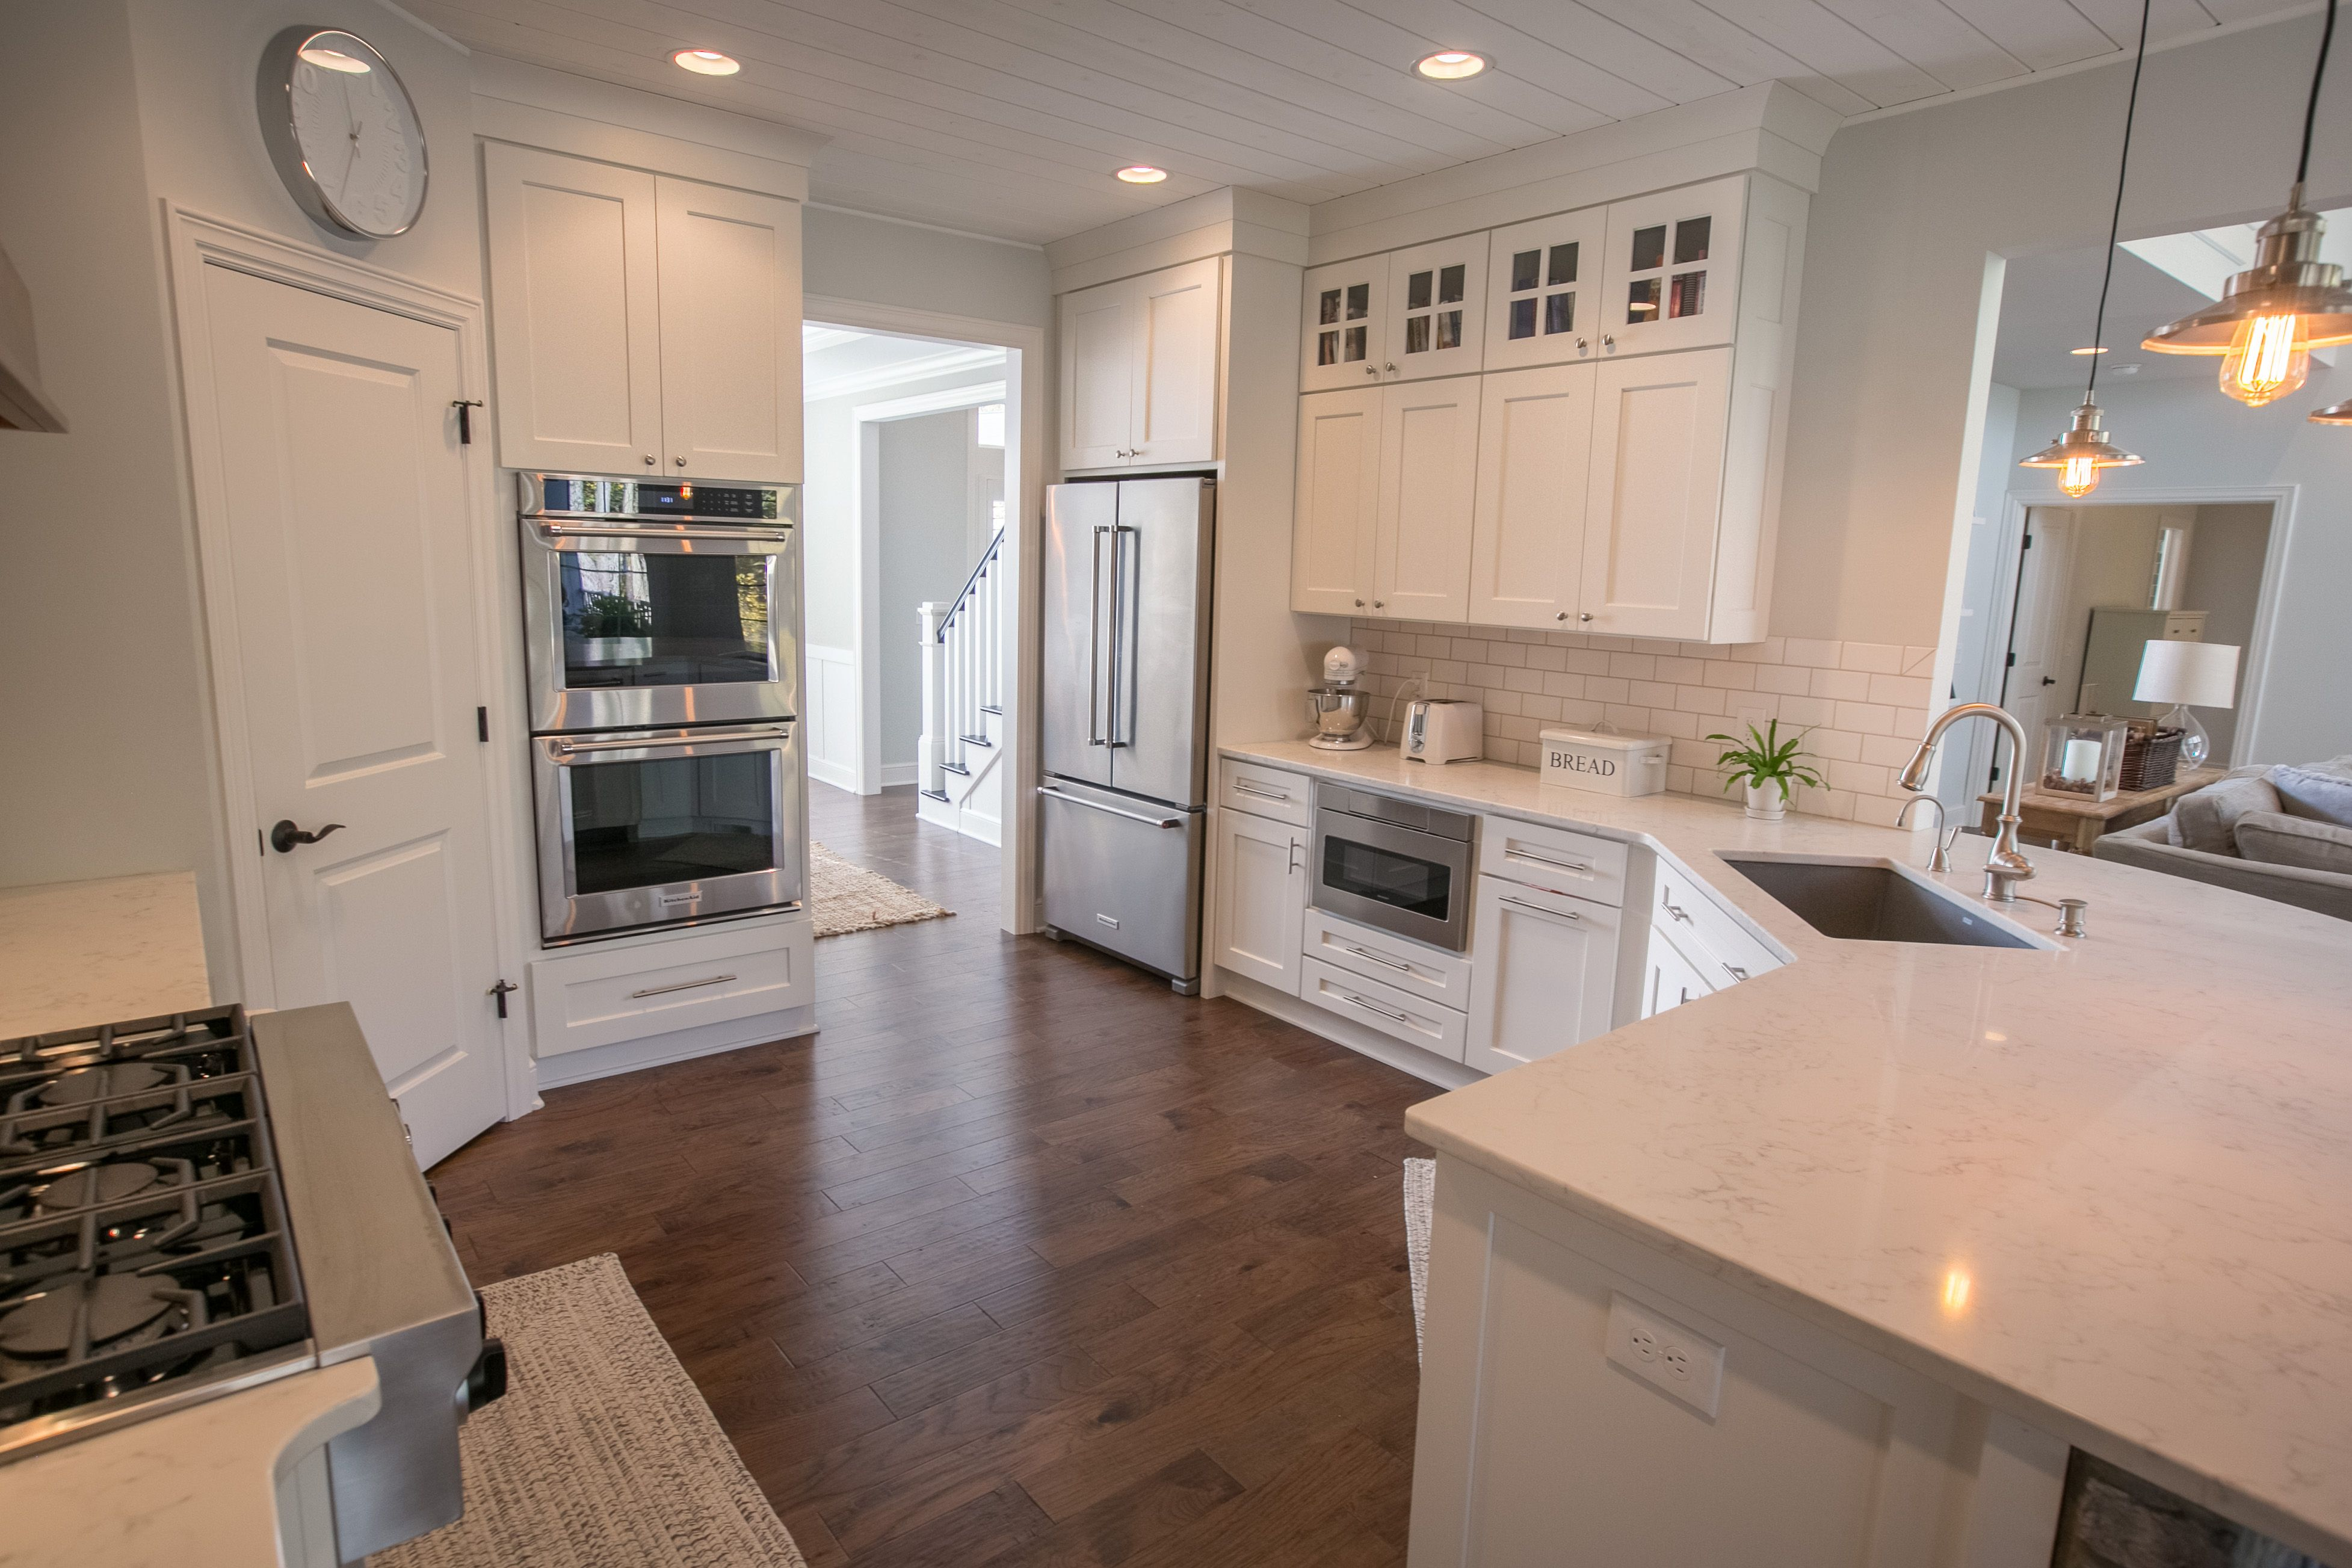 Kitchen featured in the Aberdeen C1 By Classic Homes in Akron, OH